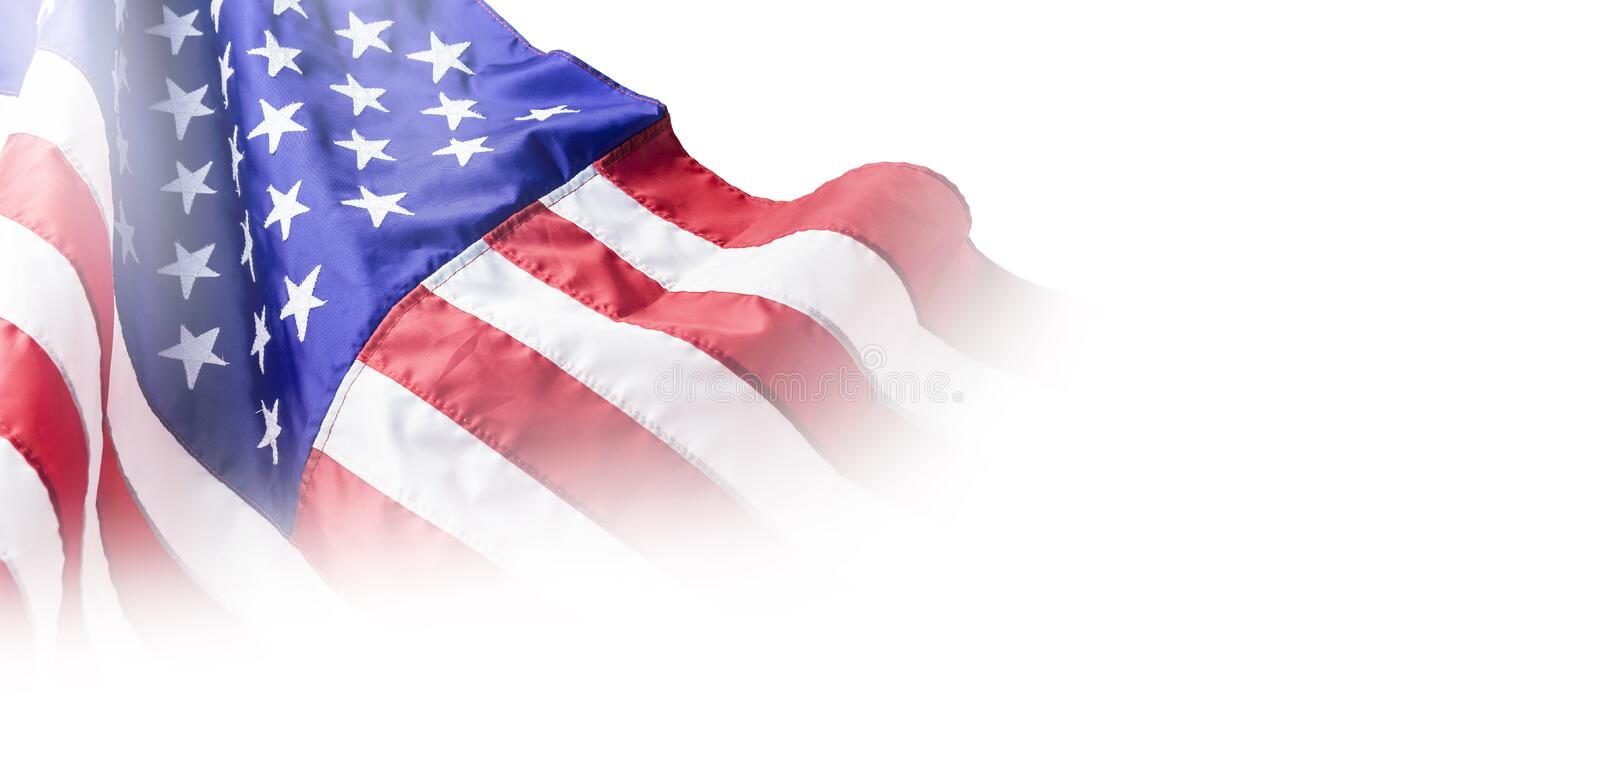 USA or american flag isolated on white background. With copy space royalty free stock images